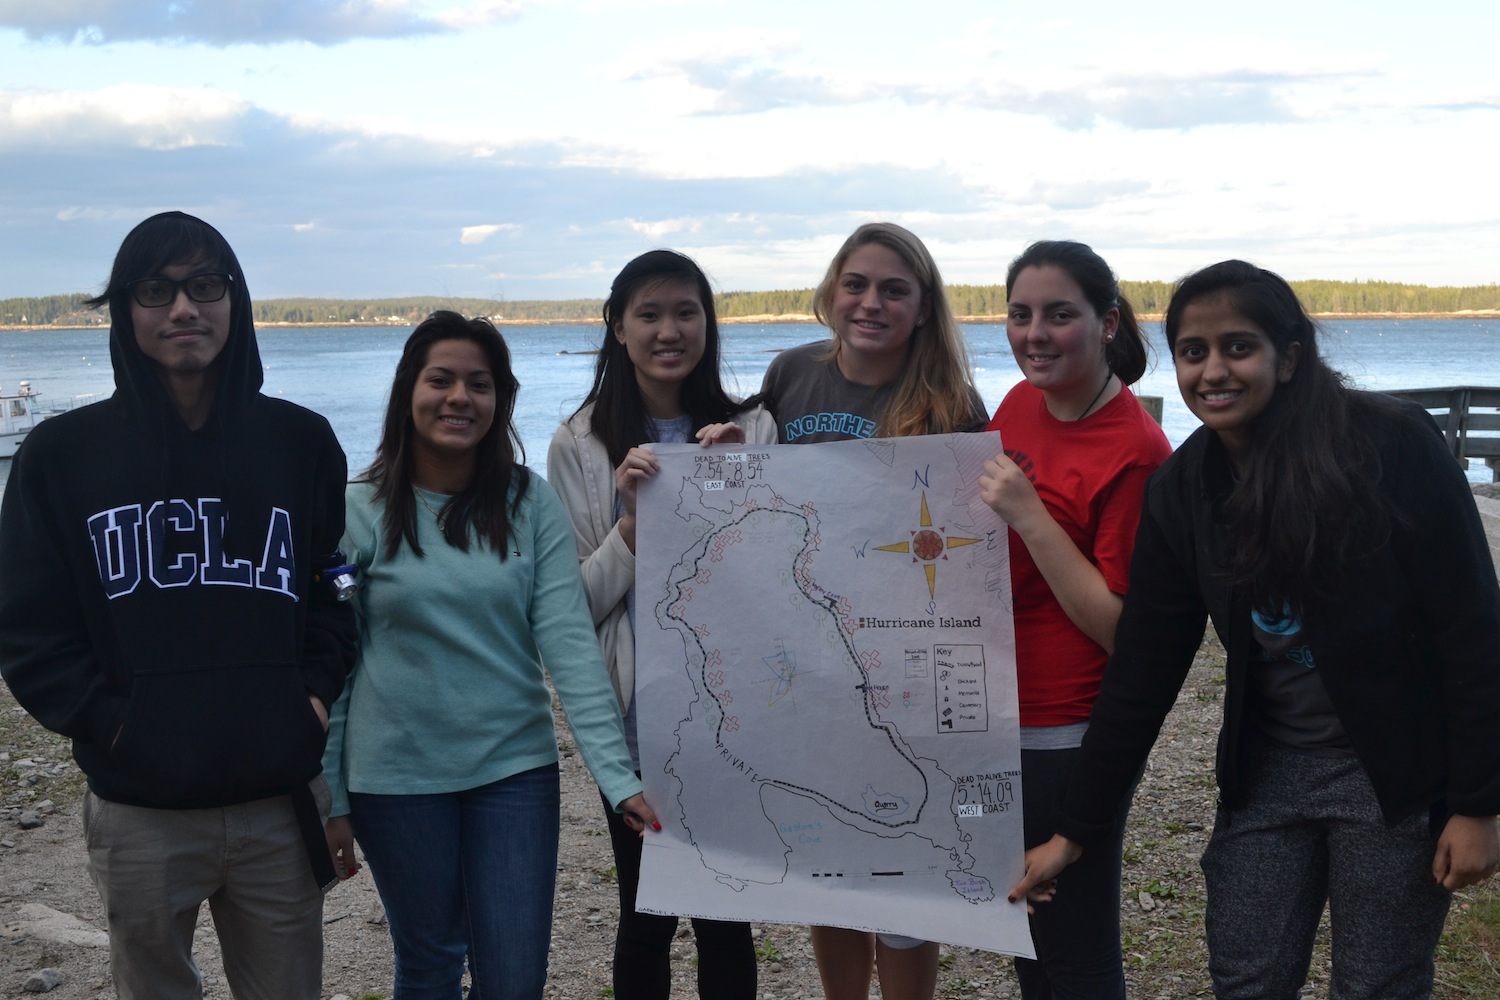 Group 2 shows off their map marking the sample plots they collected along the coastal trail